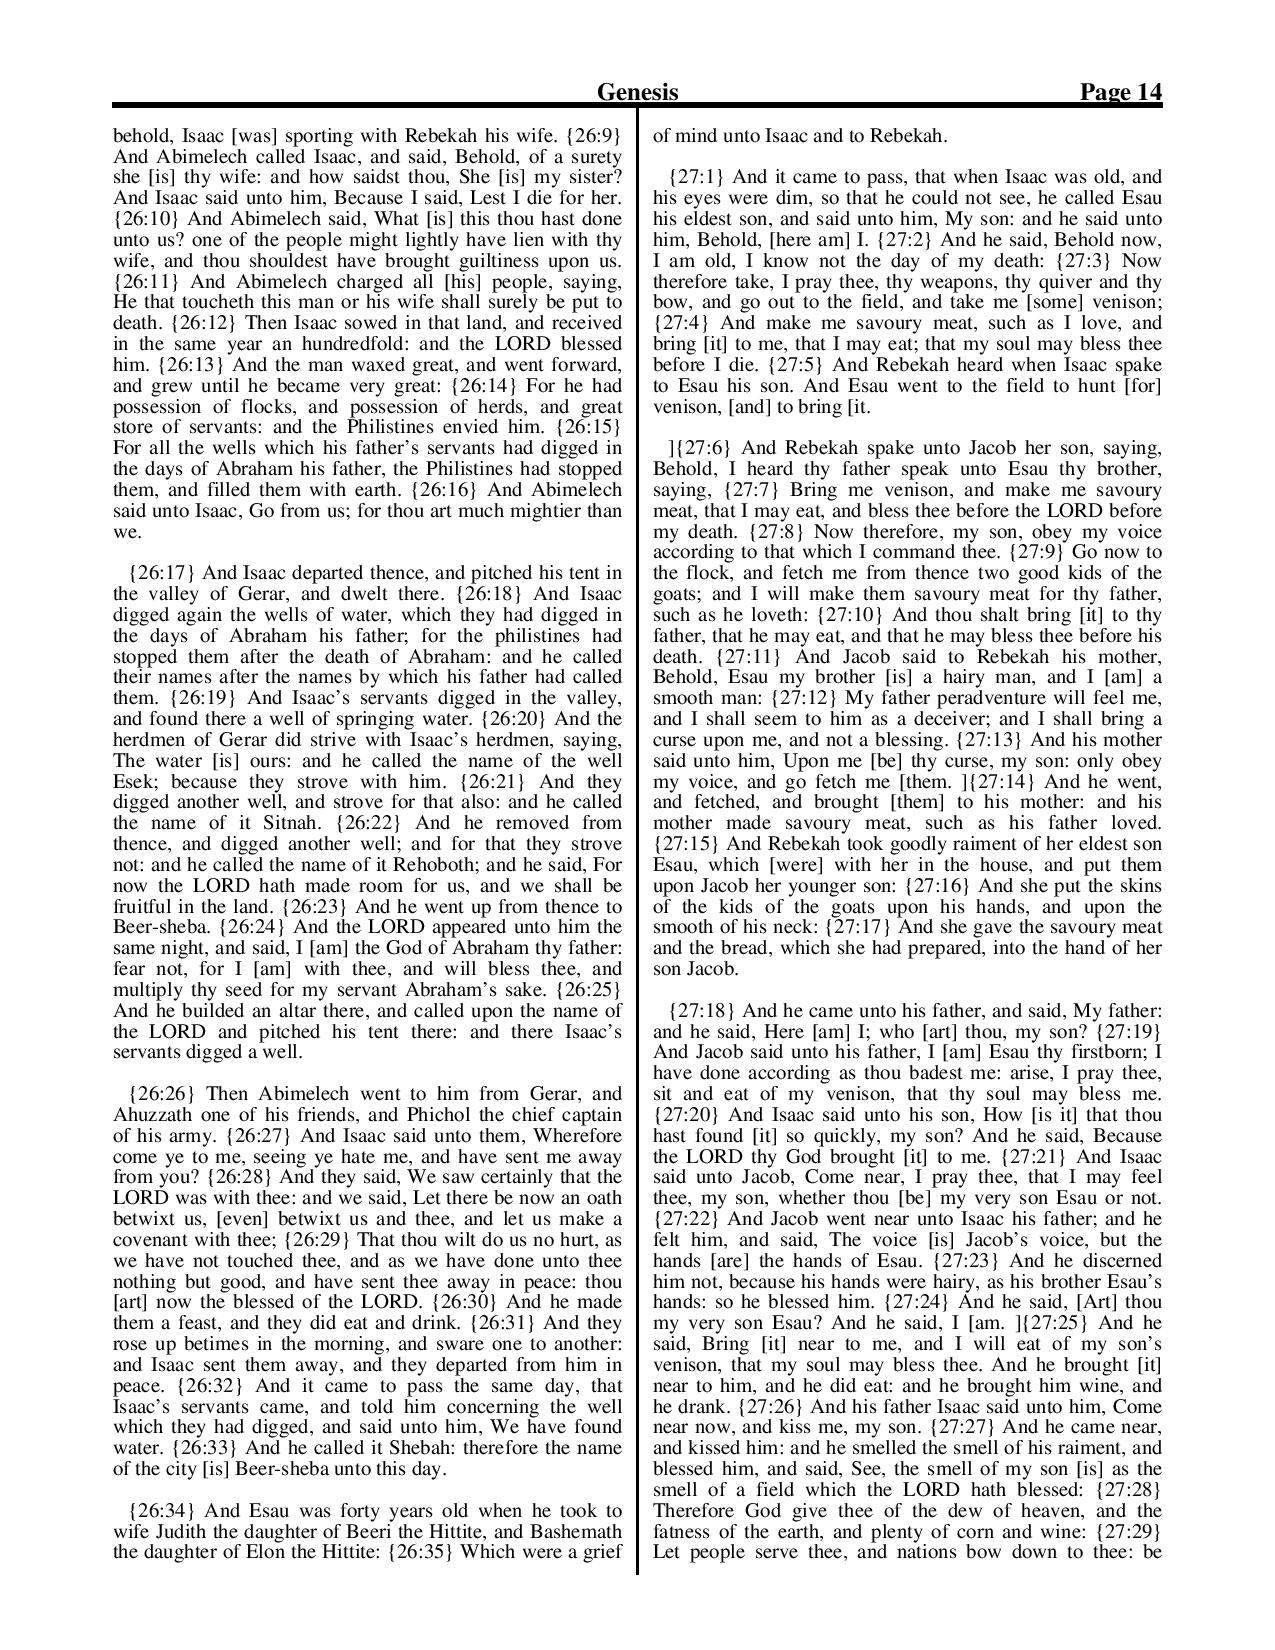 King-James-Bible-KJV-Bible-PDF-page-035